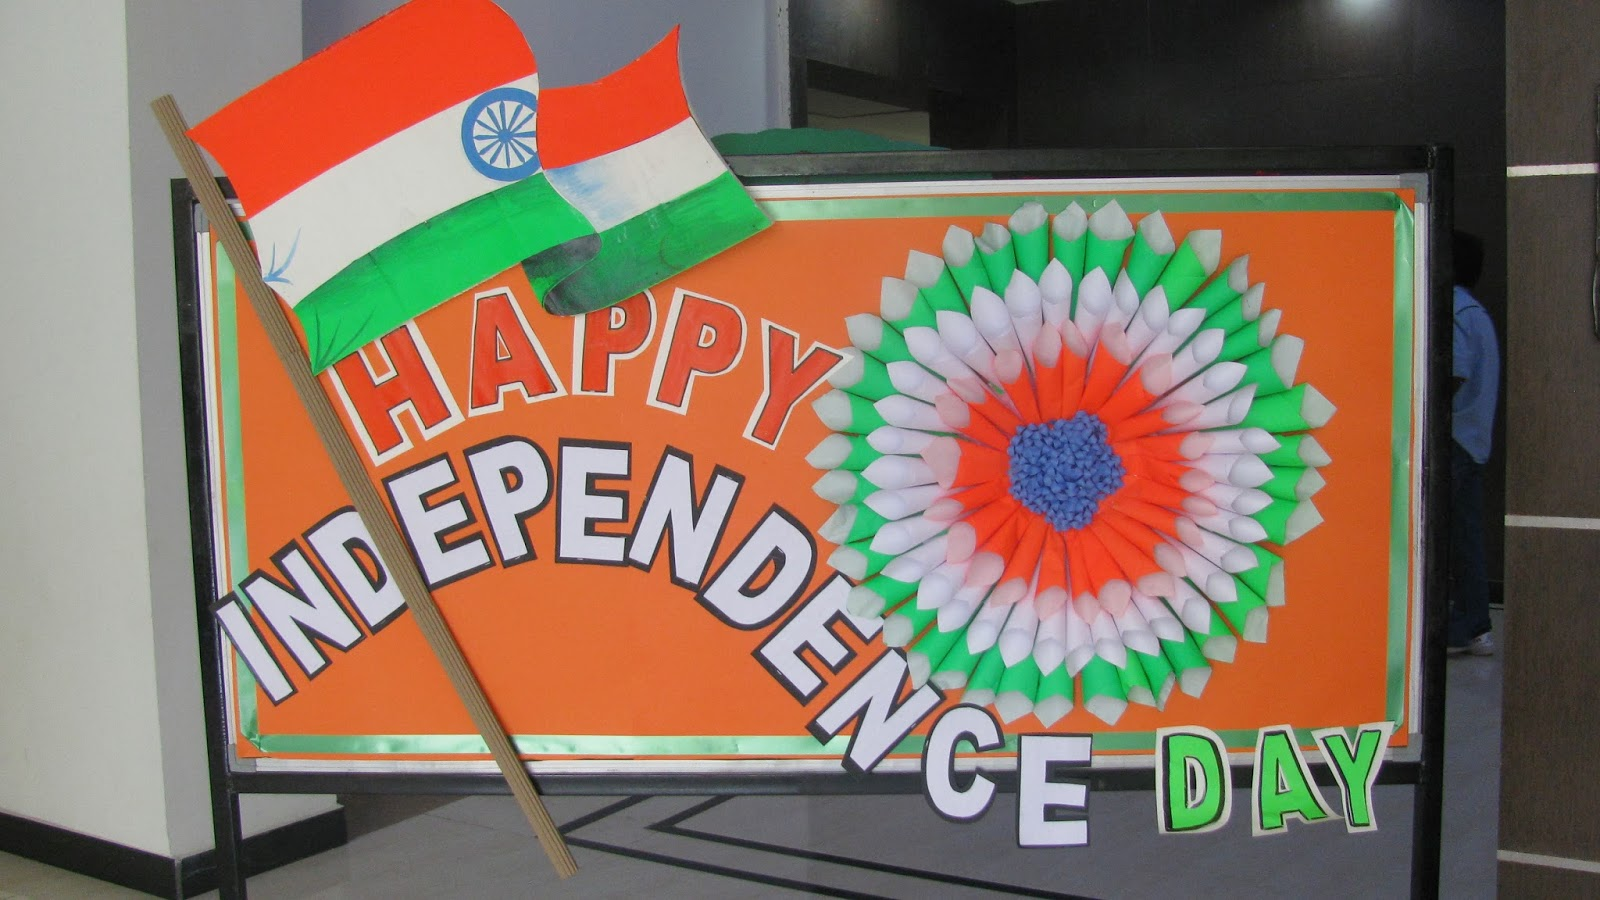 72th independence day 2018 wishes greetings card making ideas and 71th independence day 2017 wishes greetings card making ideas and designs photos gallery m4hsunfo